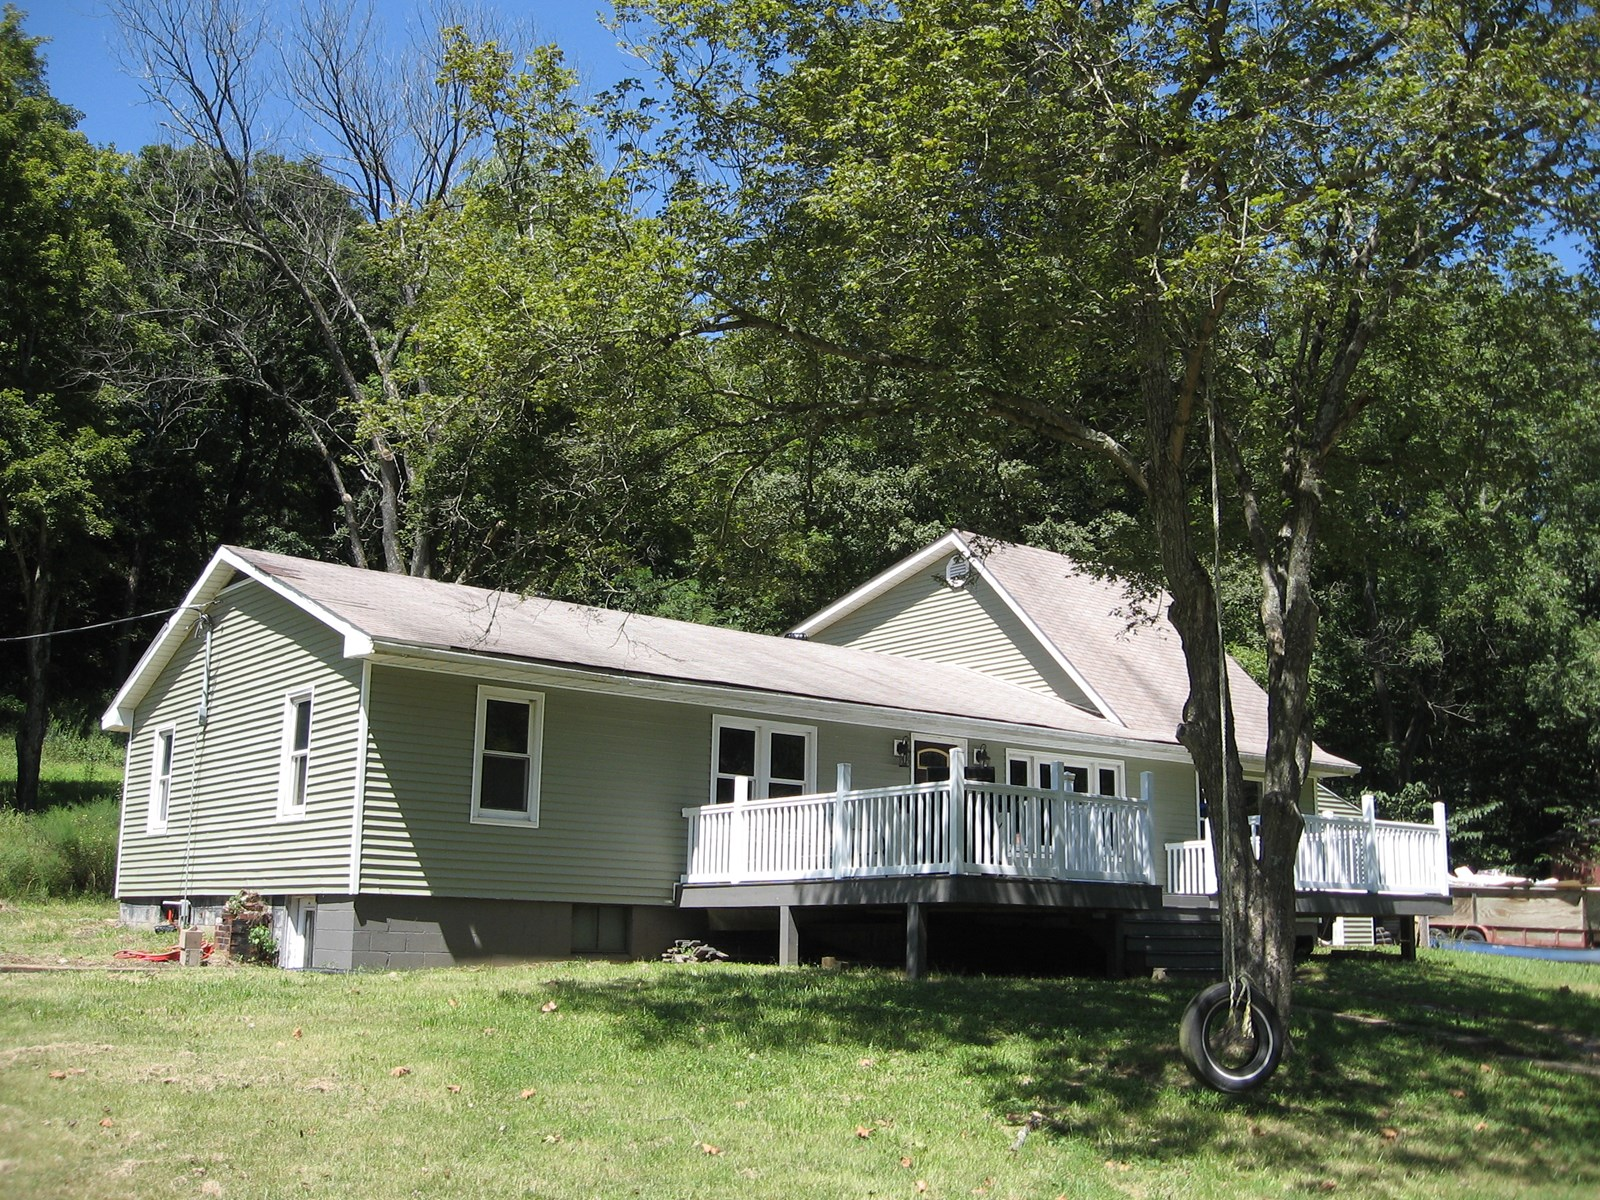 MISSOURI OZARKS, COUNTRY HOME FOR SALE: